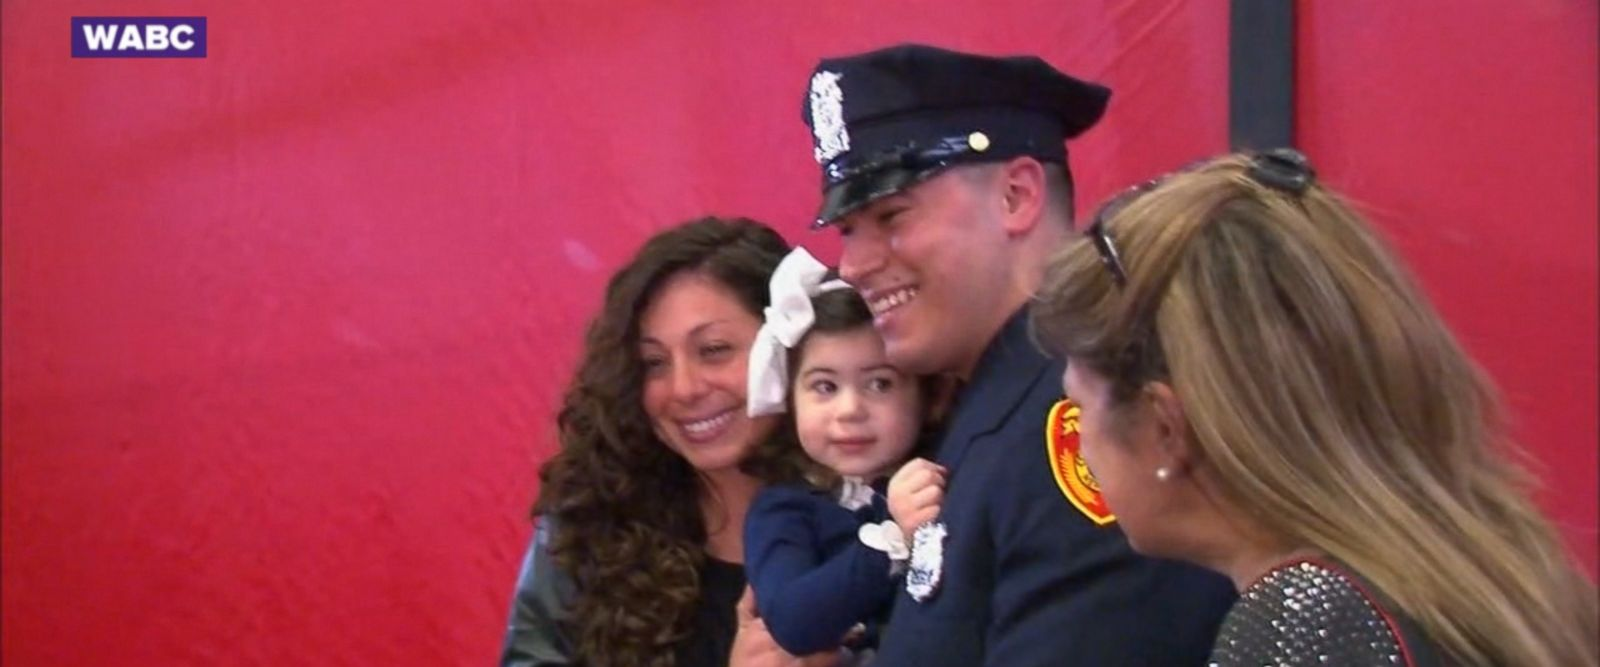 Officer Matias Ferreira is celebrating a dream come true today.